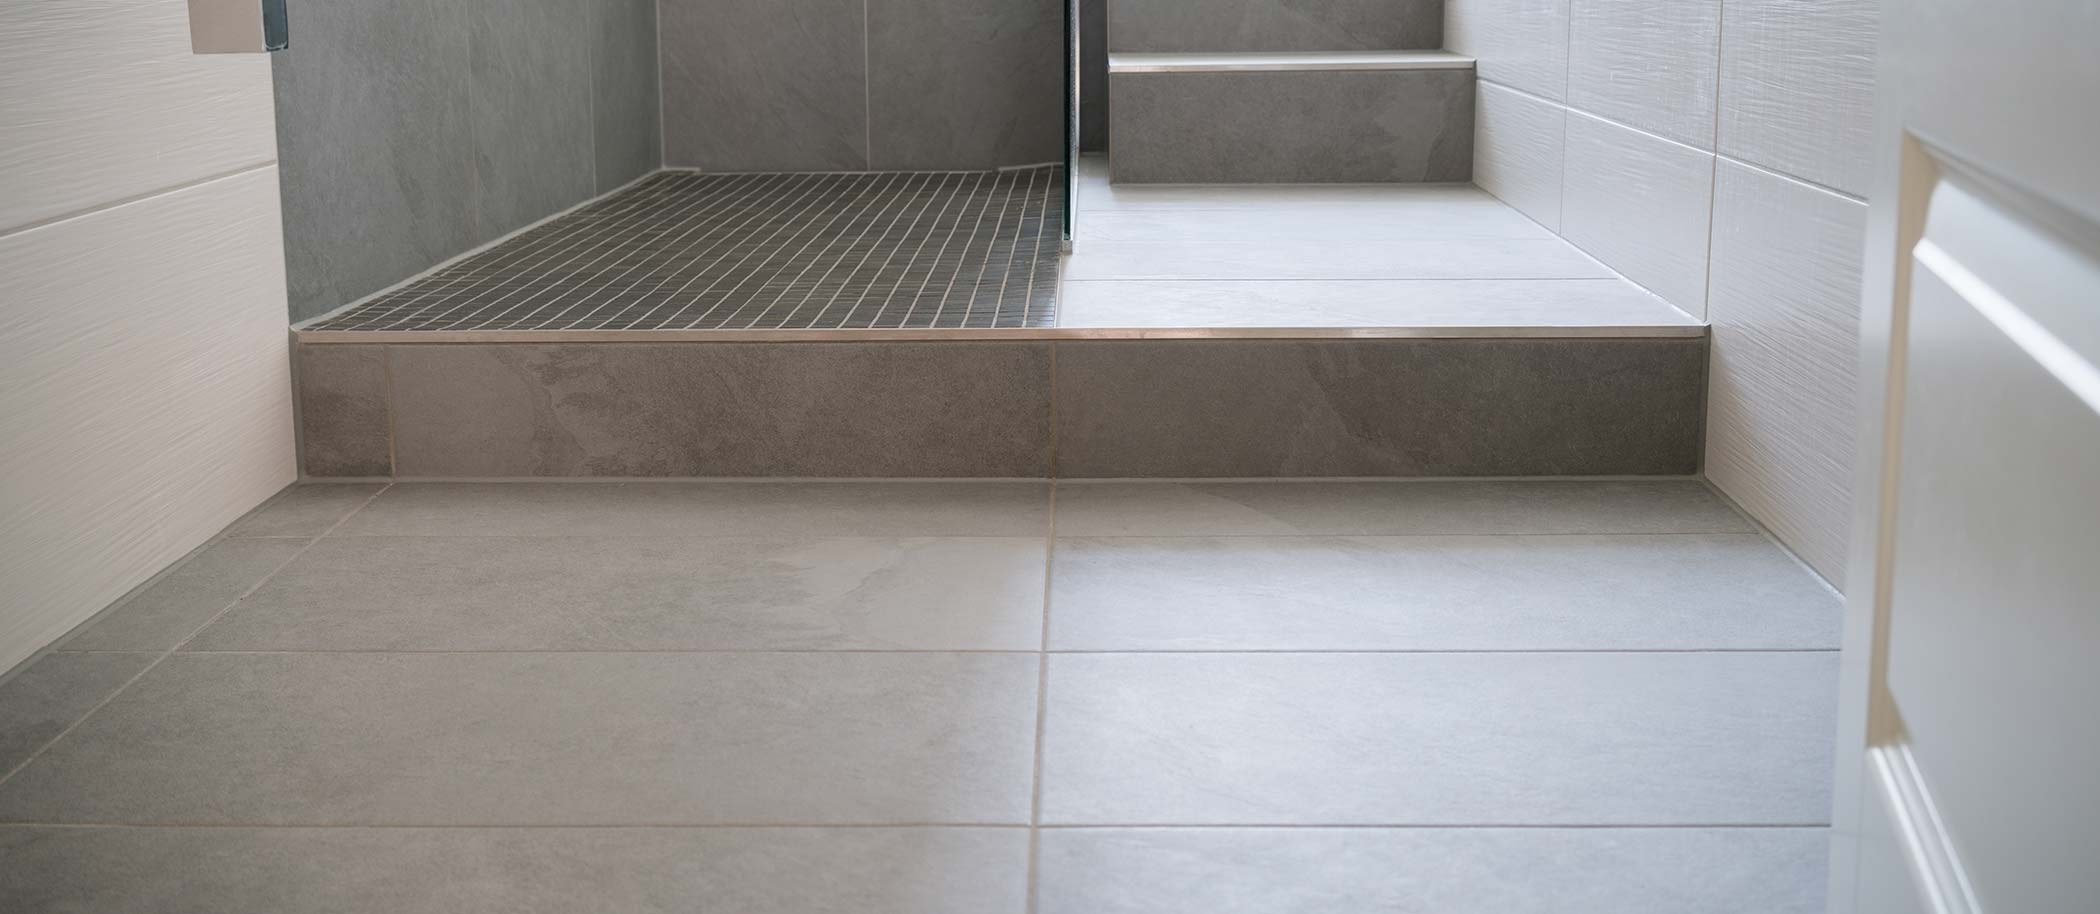 aaa-clean-tile-grout-cleaning-kitchener-waterloo-header